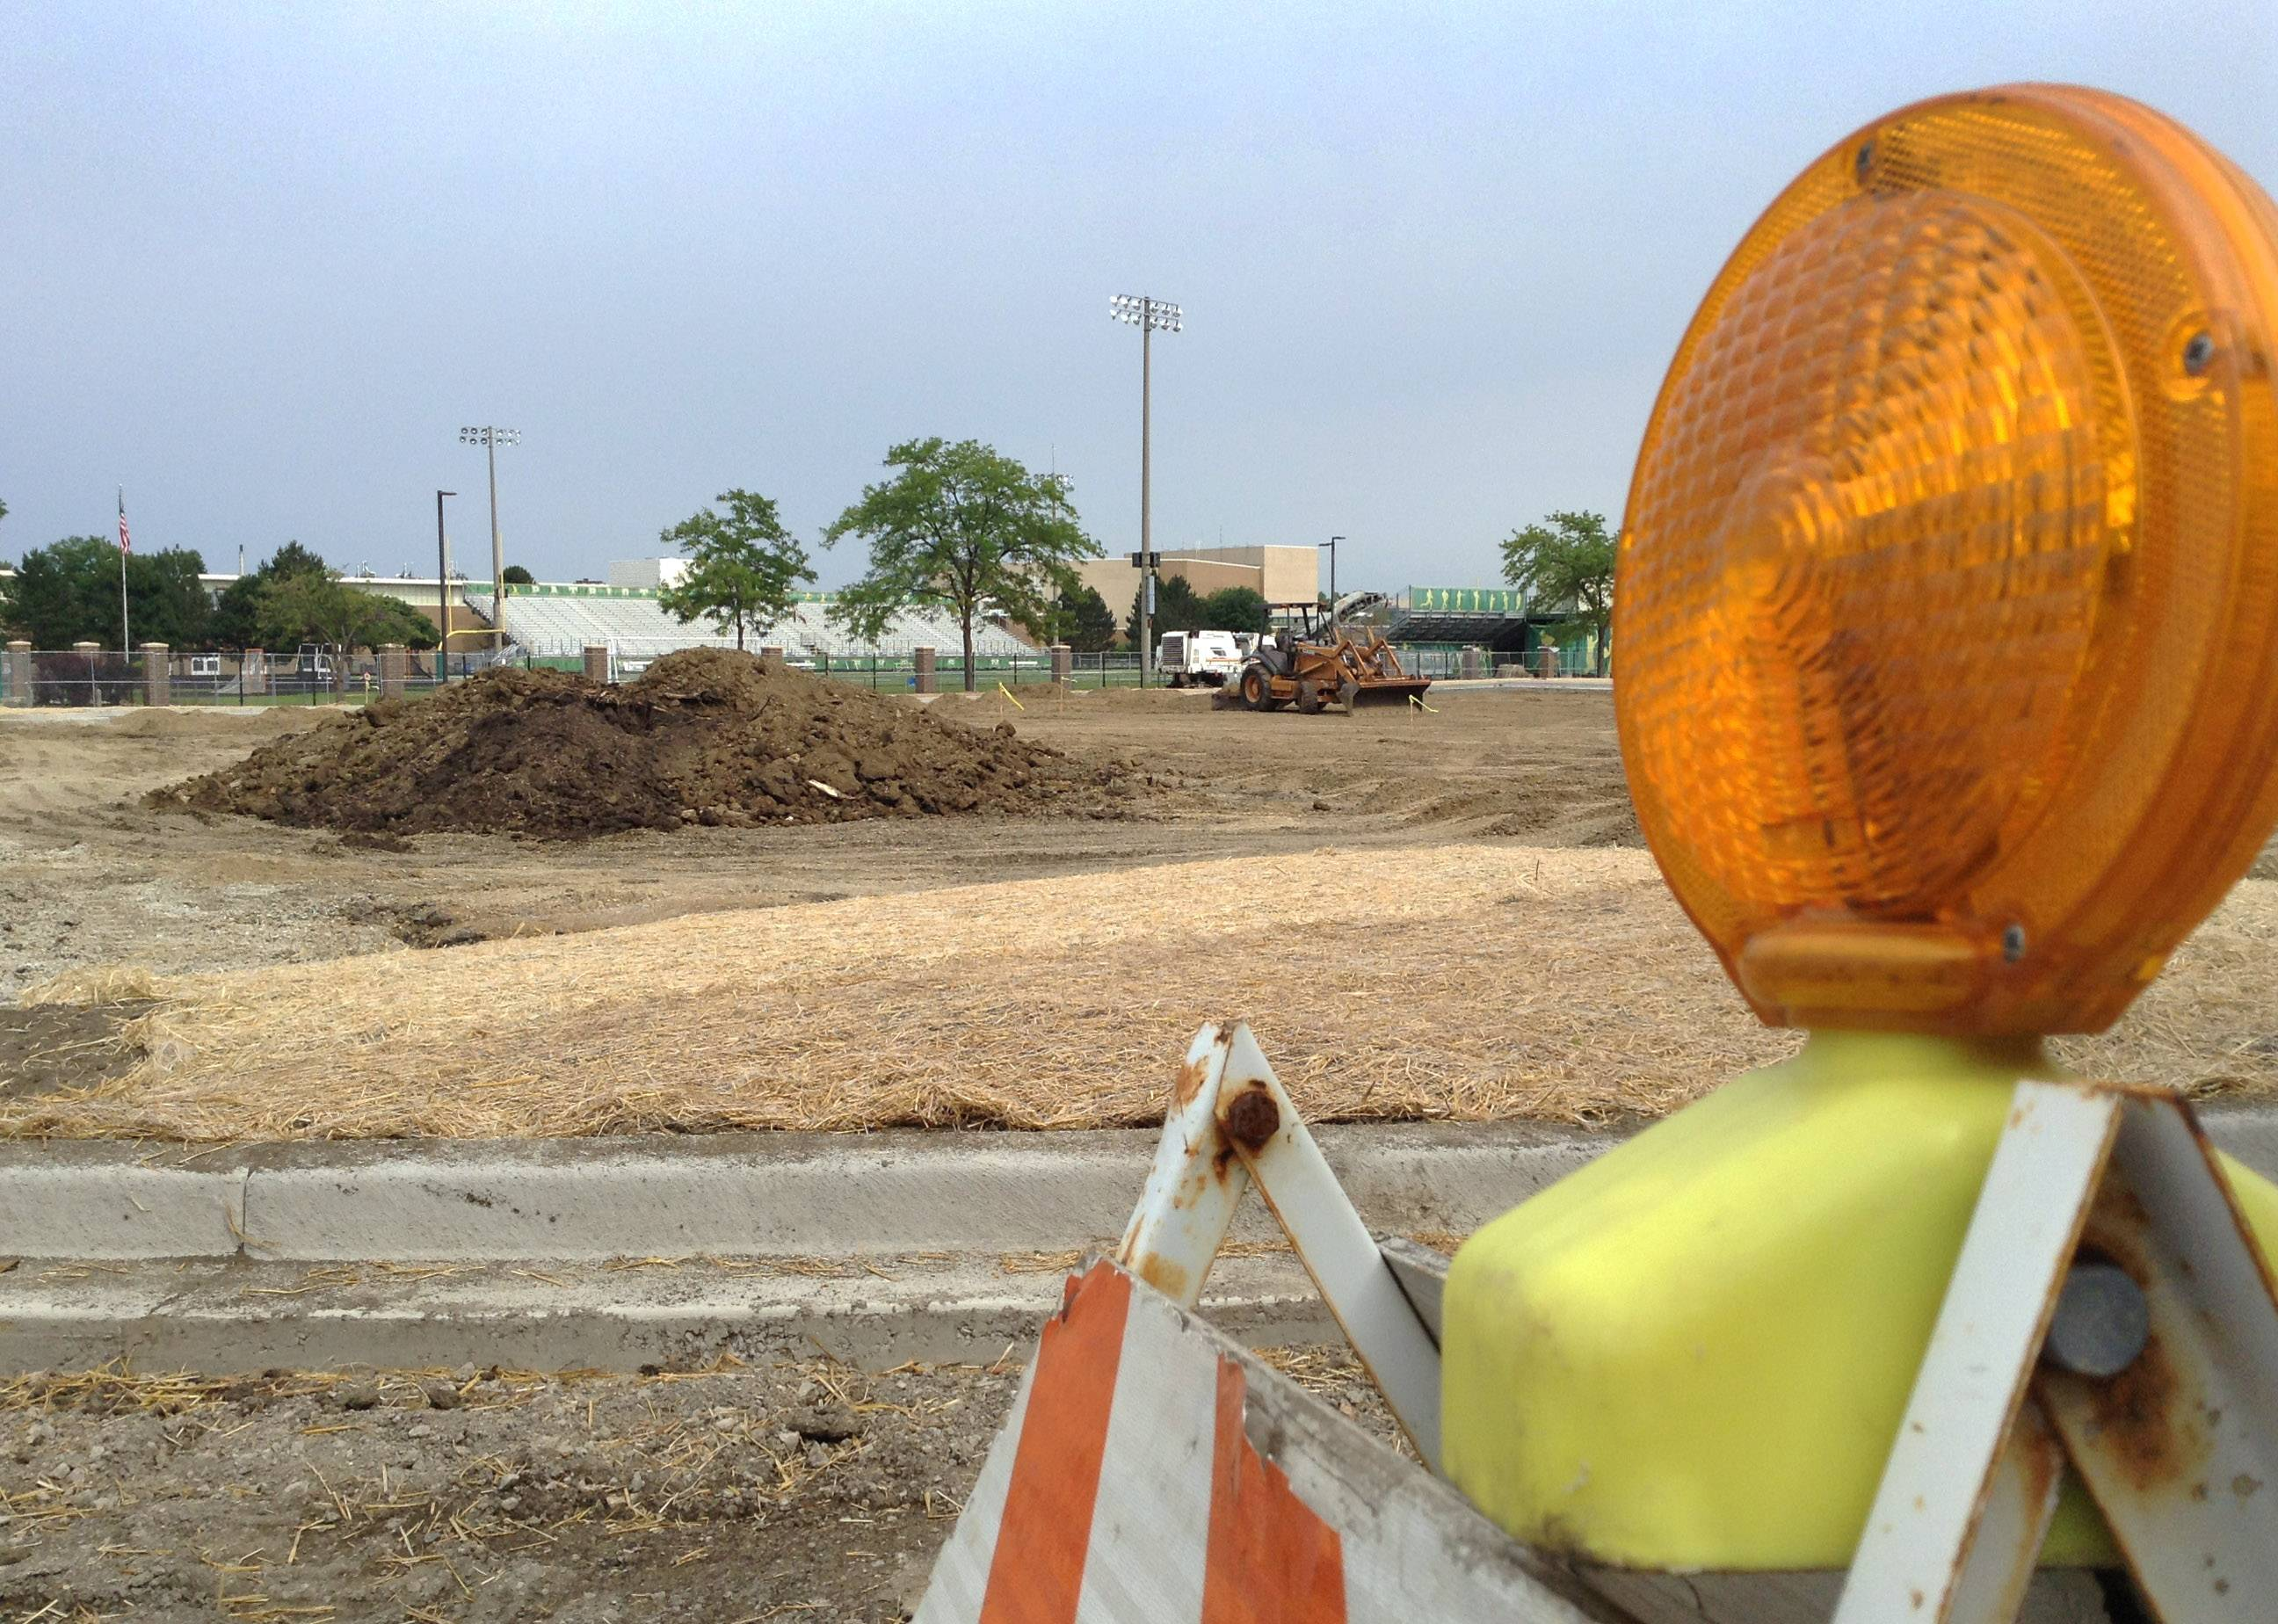 A parking lot at Stevenson High School is being rebuilt with a new lane configuration to separate buses from cars.